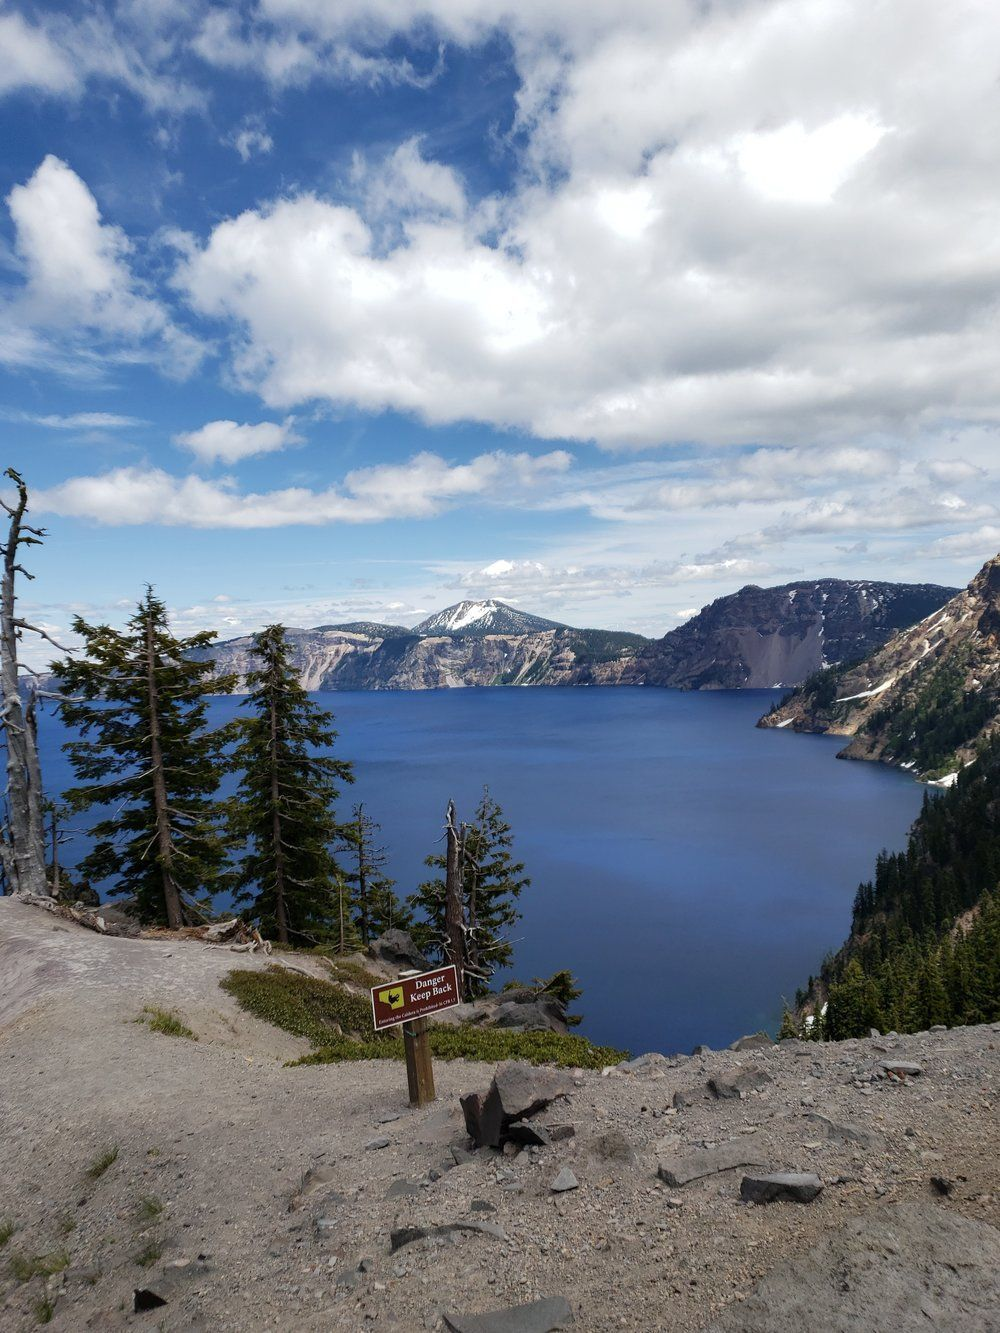 The rim drive - Crater lake national park #craterlakenationalpark The rim drive - Crater lake national park #craterlakenationalpark The rim drive - Crater lake national park #craterlakenationalpark The rim drive - Crater lake national park #craterlakenationalpark